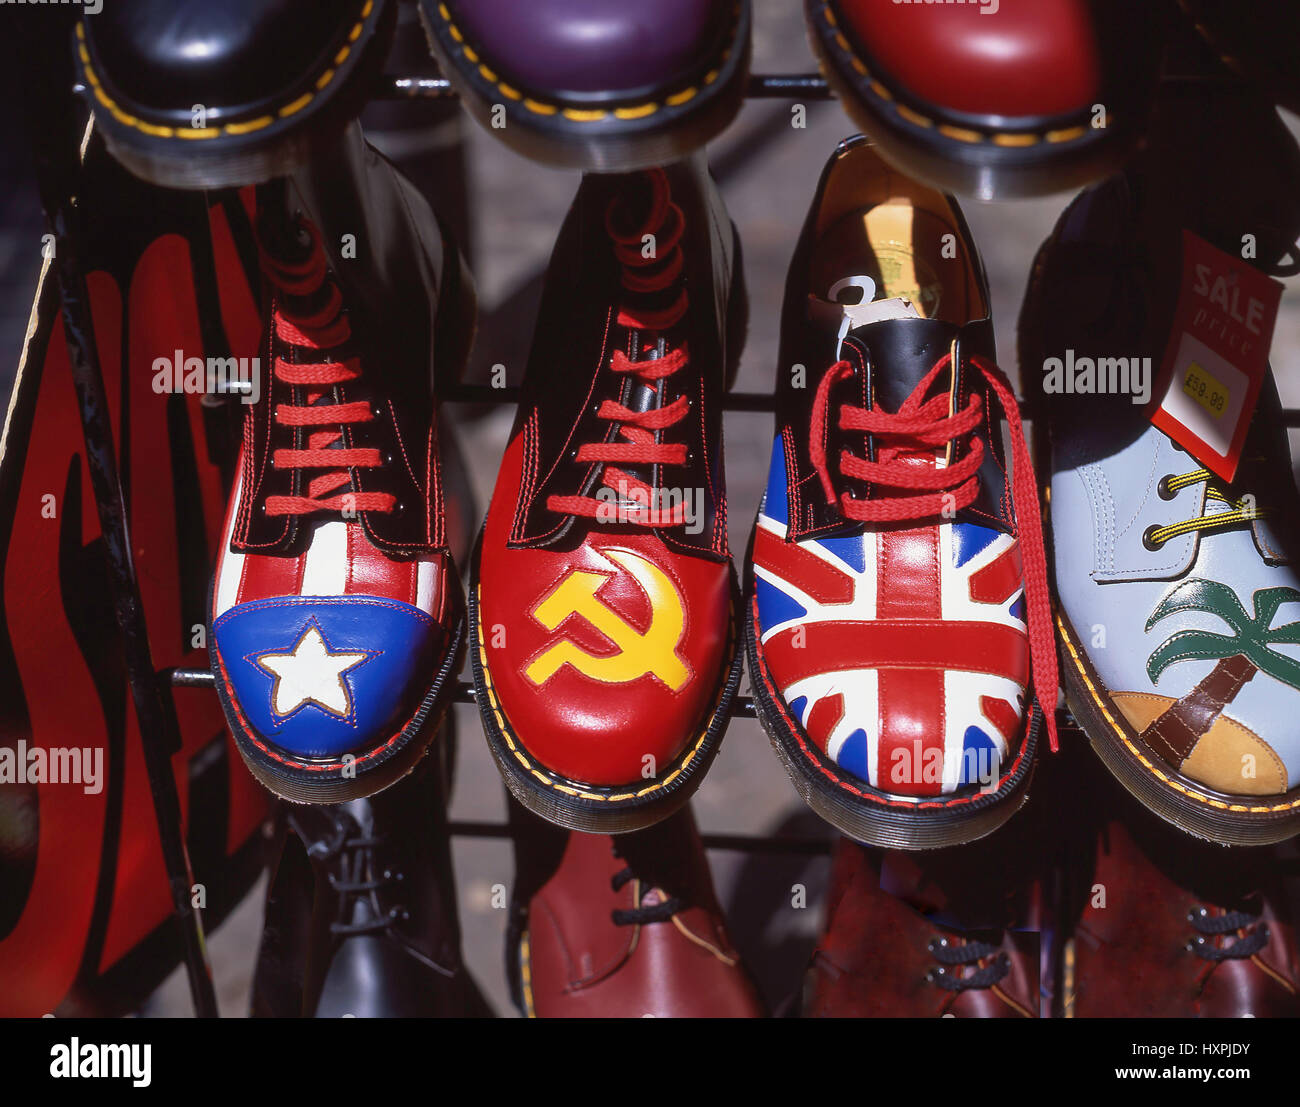 b95f80ff77af77 Doc Martin chaussures le décrochage, Carnaby Street, Soho, City of  westminster, Greater